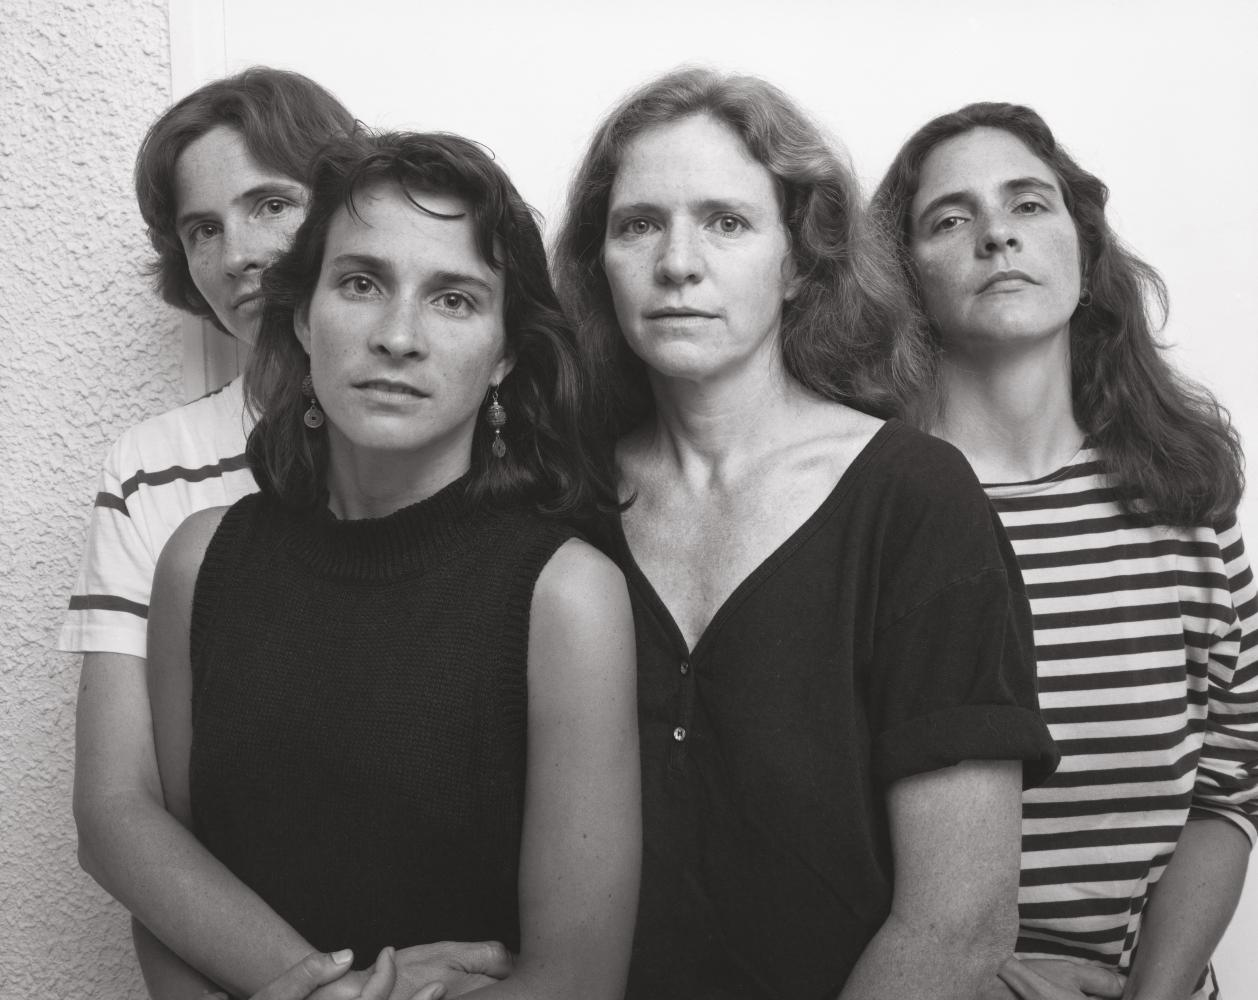 The Brown Sisters, Cambridge, Massachusetts, 1989